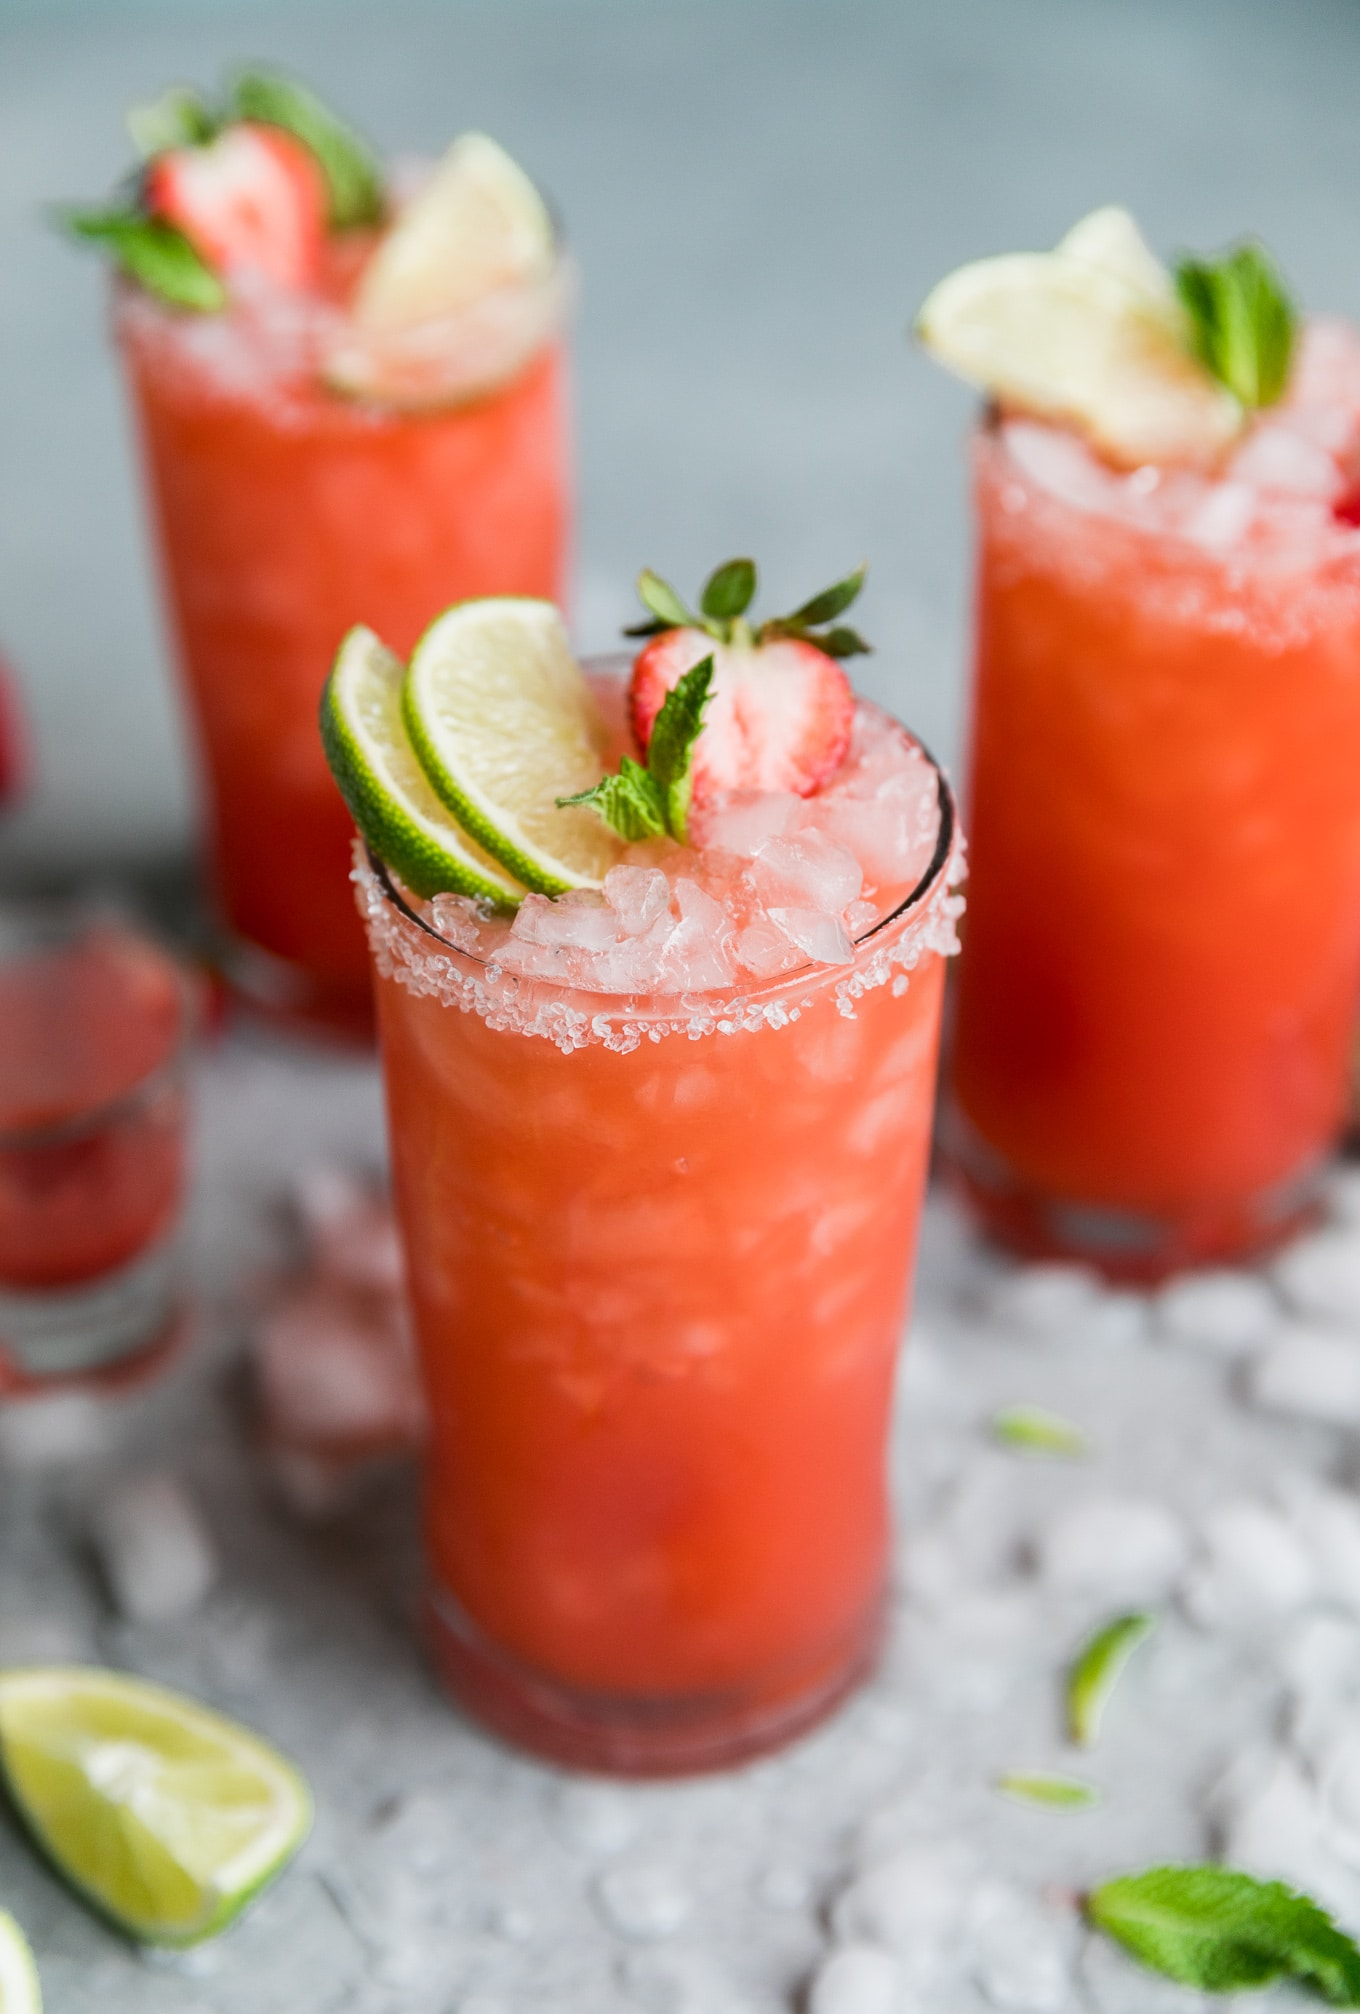 Close up shot of a strawberry margarita garnished with two lime slices, a mint sprig, and a halved strawberry with two margaritas and a shot glass in the background